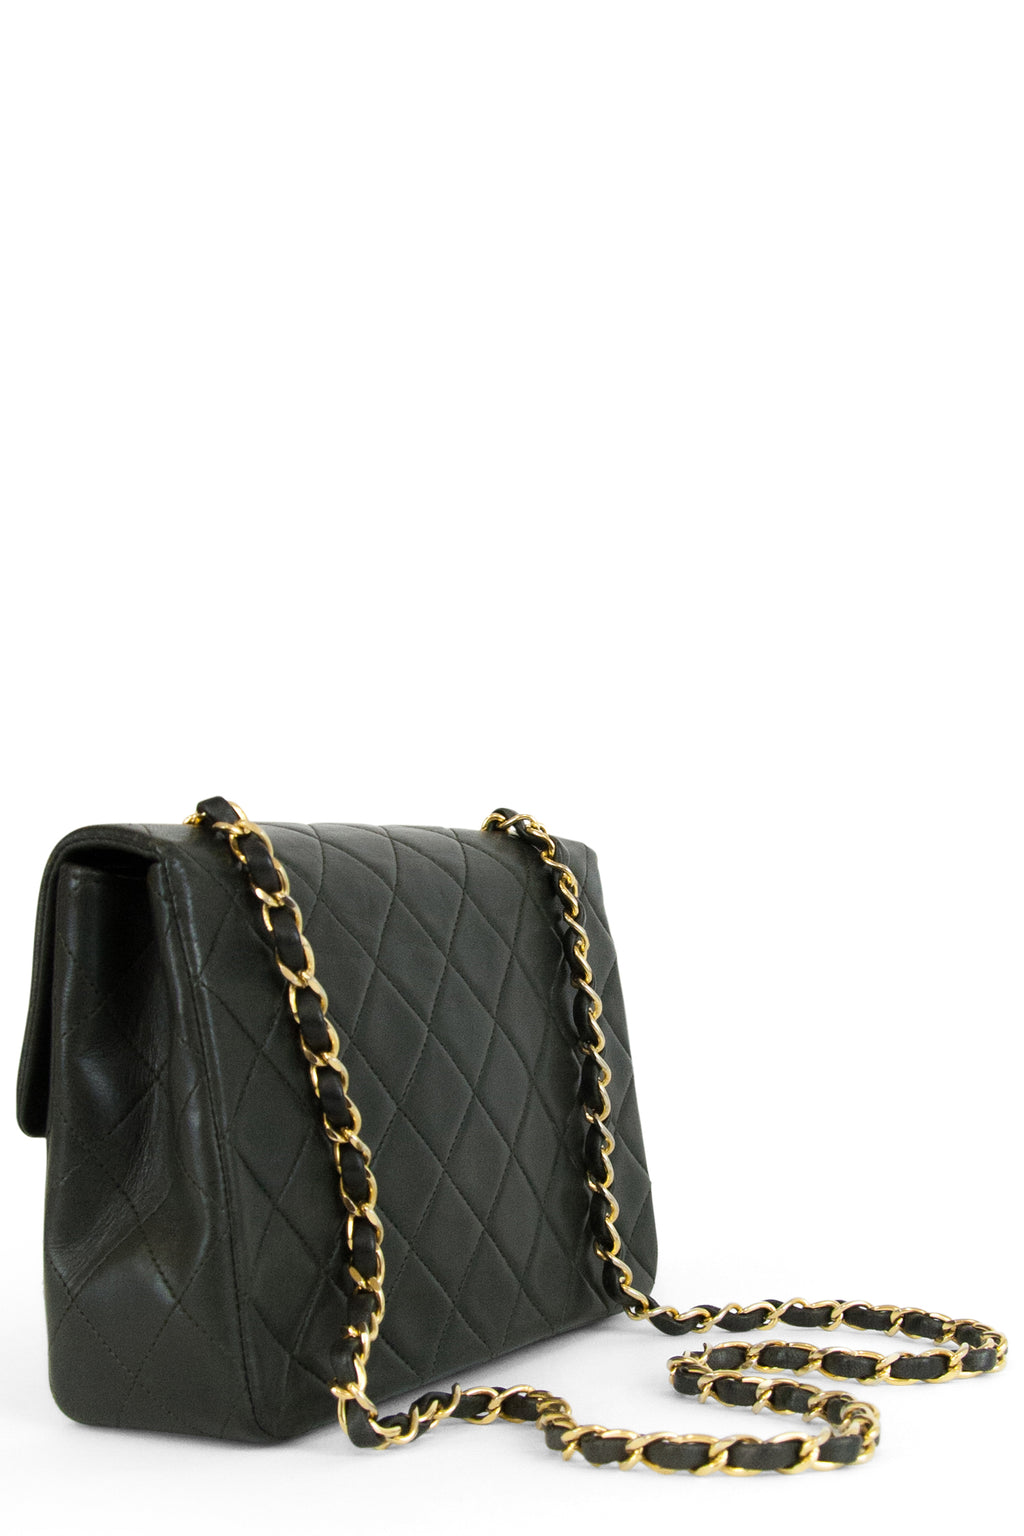 CHANEL Small Crossbody Bag